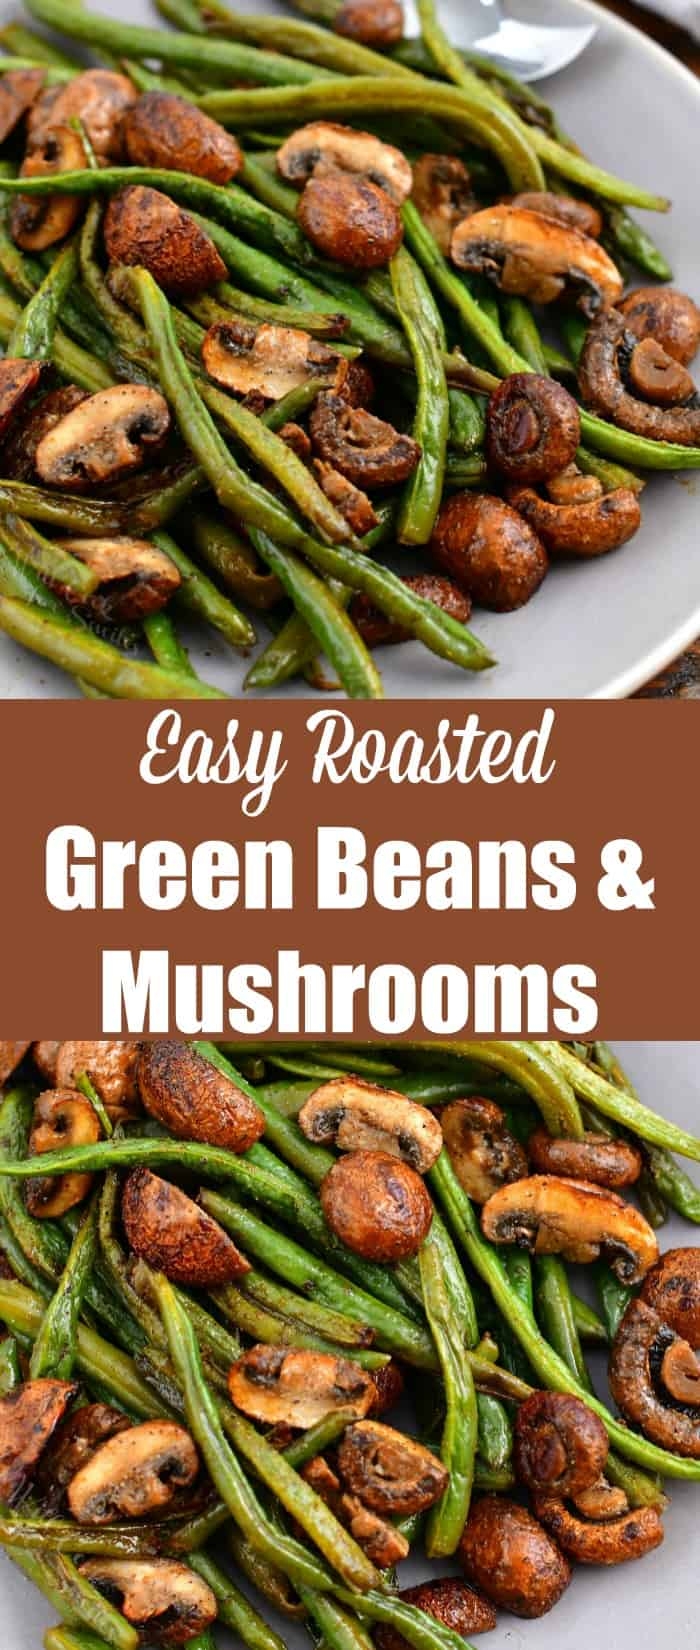 titled photo for Pinterest: Easy Roasted Green Beans and Mushrooms